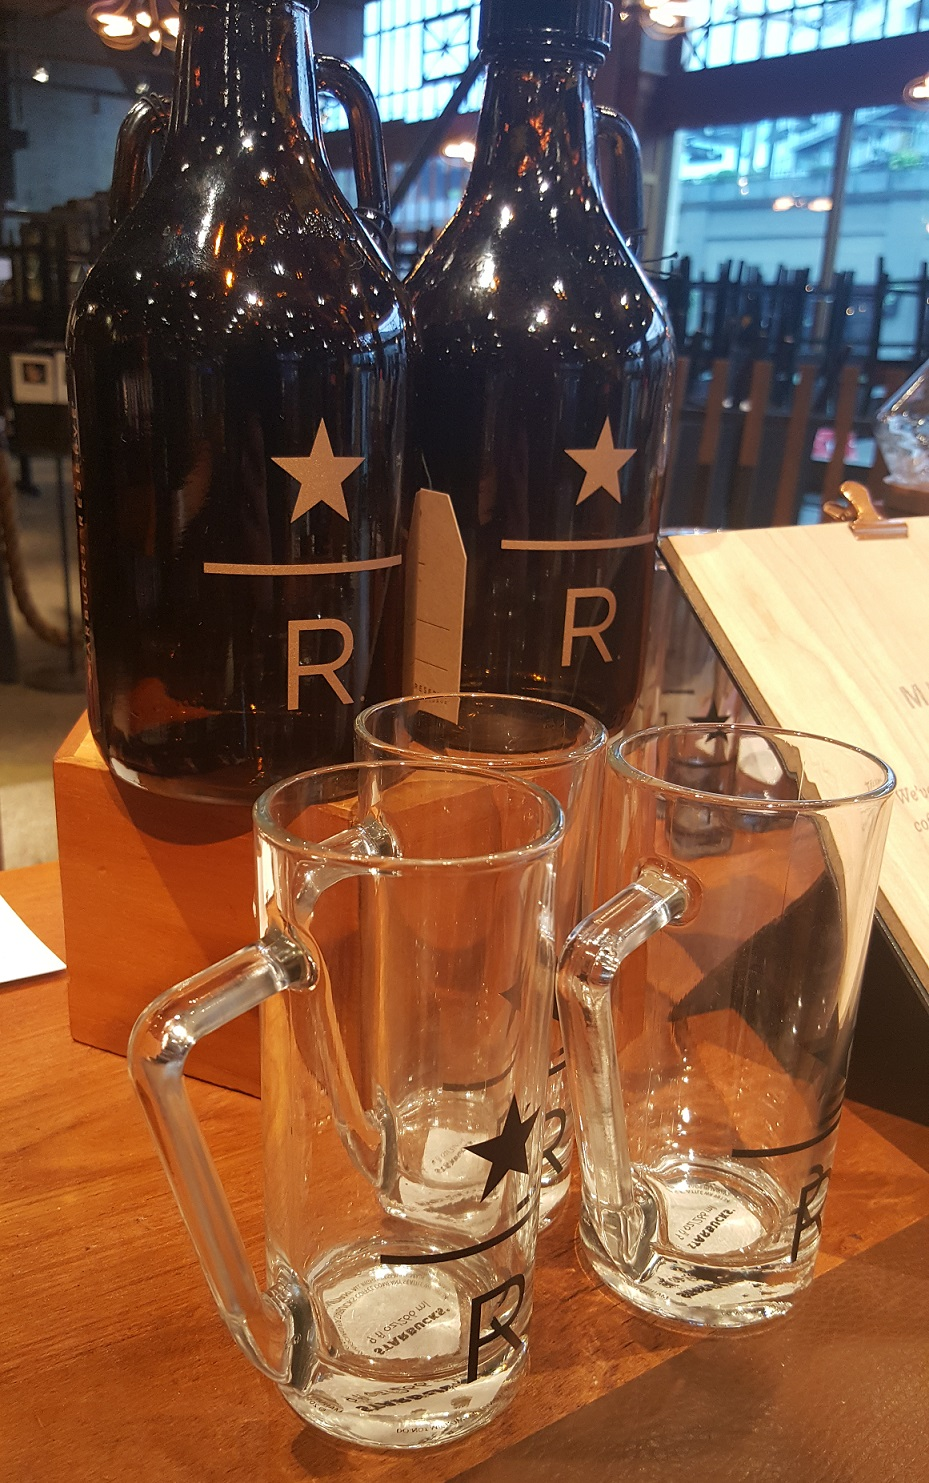 1 - 1 - 20170418_071320 cold beverage star r 9 ounce glasses.jpg